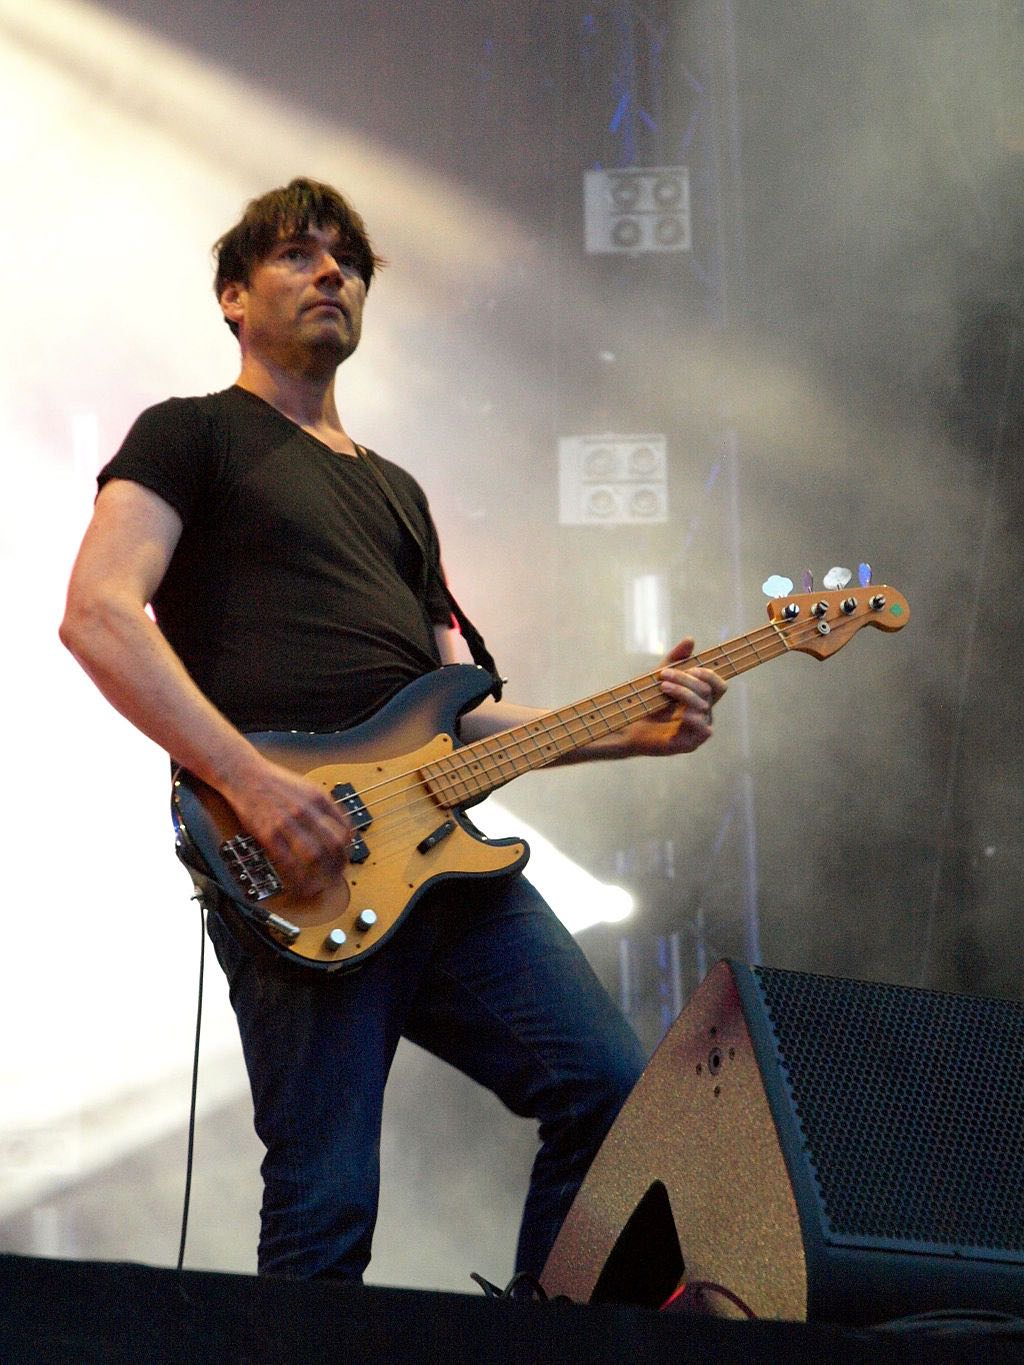 New P&O cruise ship Iona to be named with Alex James' smashing Britpopcider